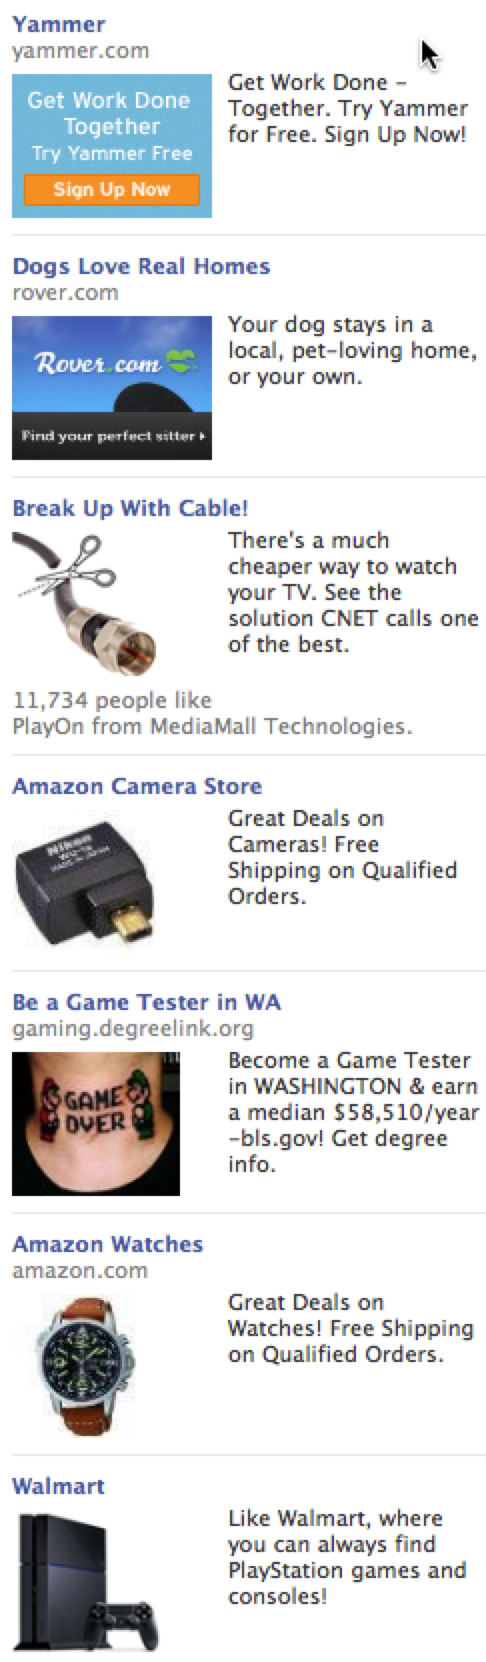 Bad Facebook ads